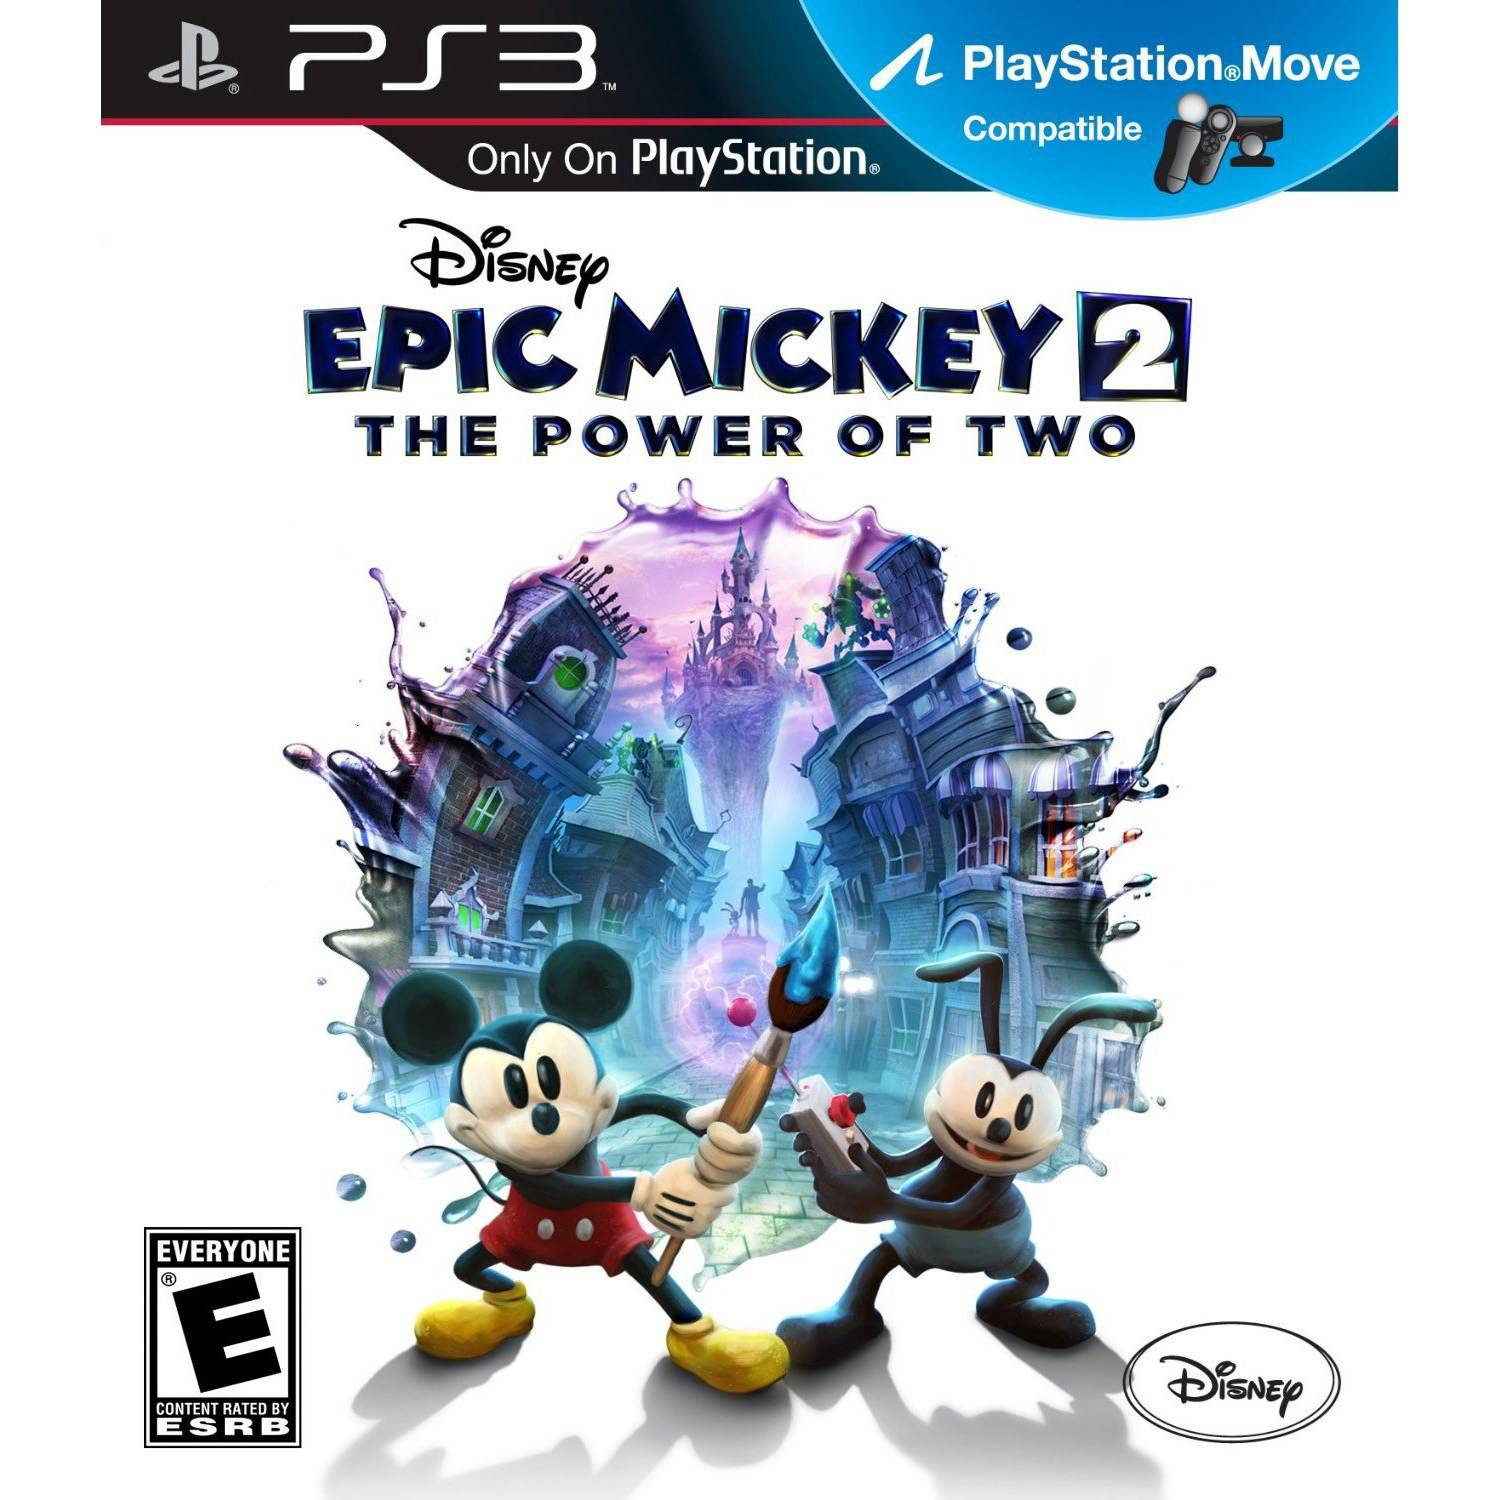 Disney Epic Mickey 2: The Power of Two (PS3) - Pre-Owned